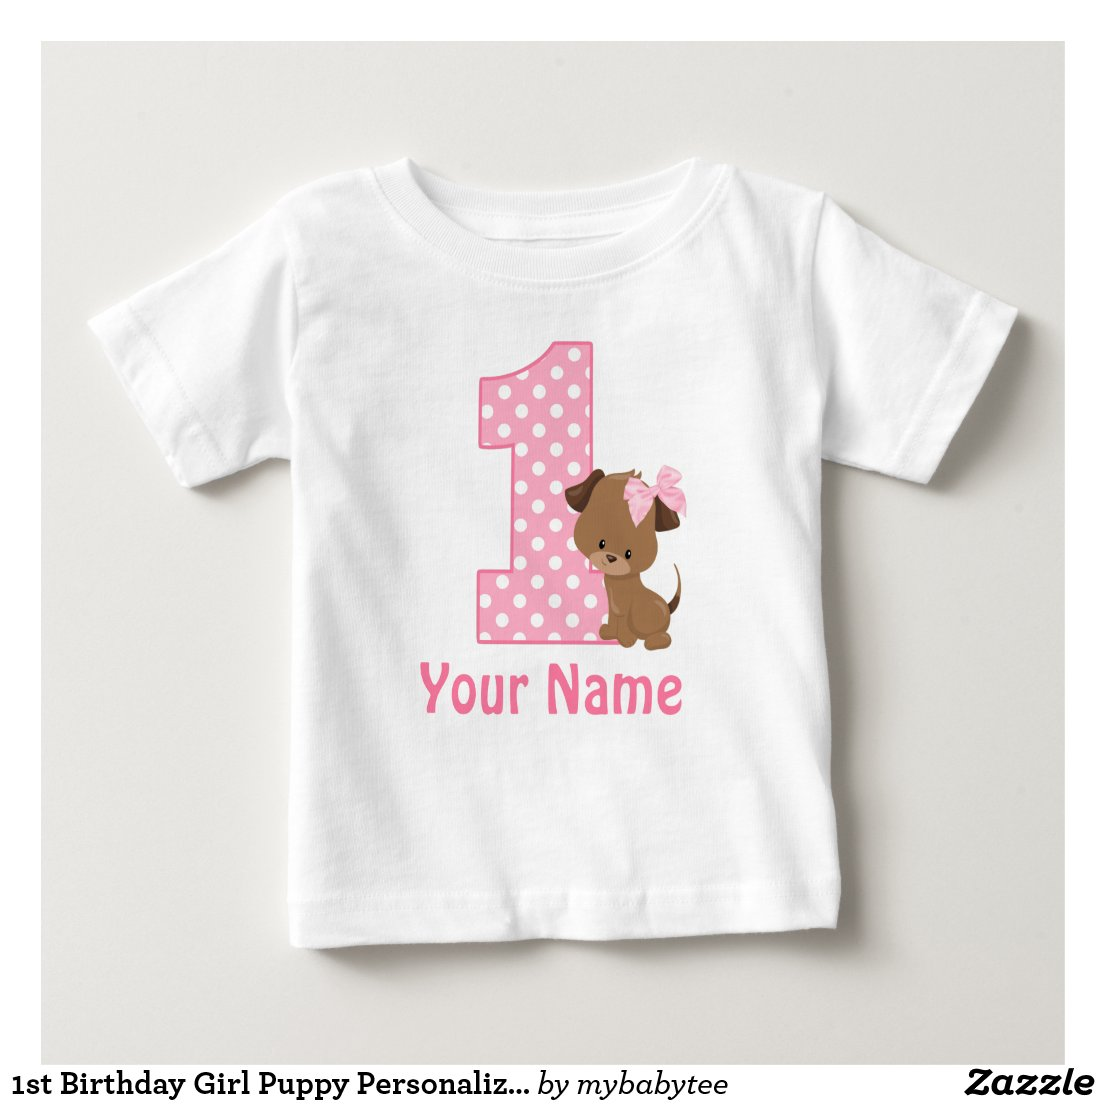 1st Birthday T Shirt